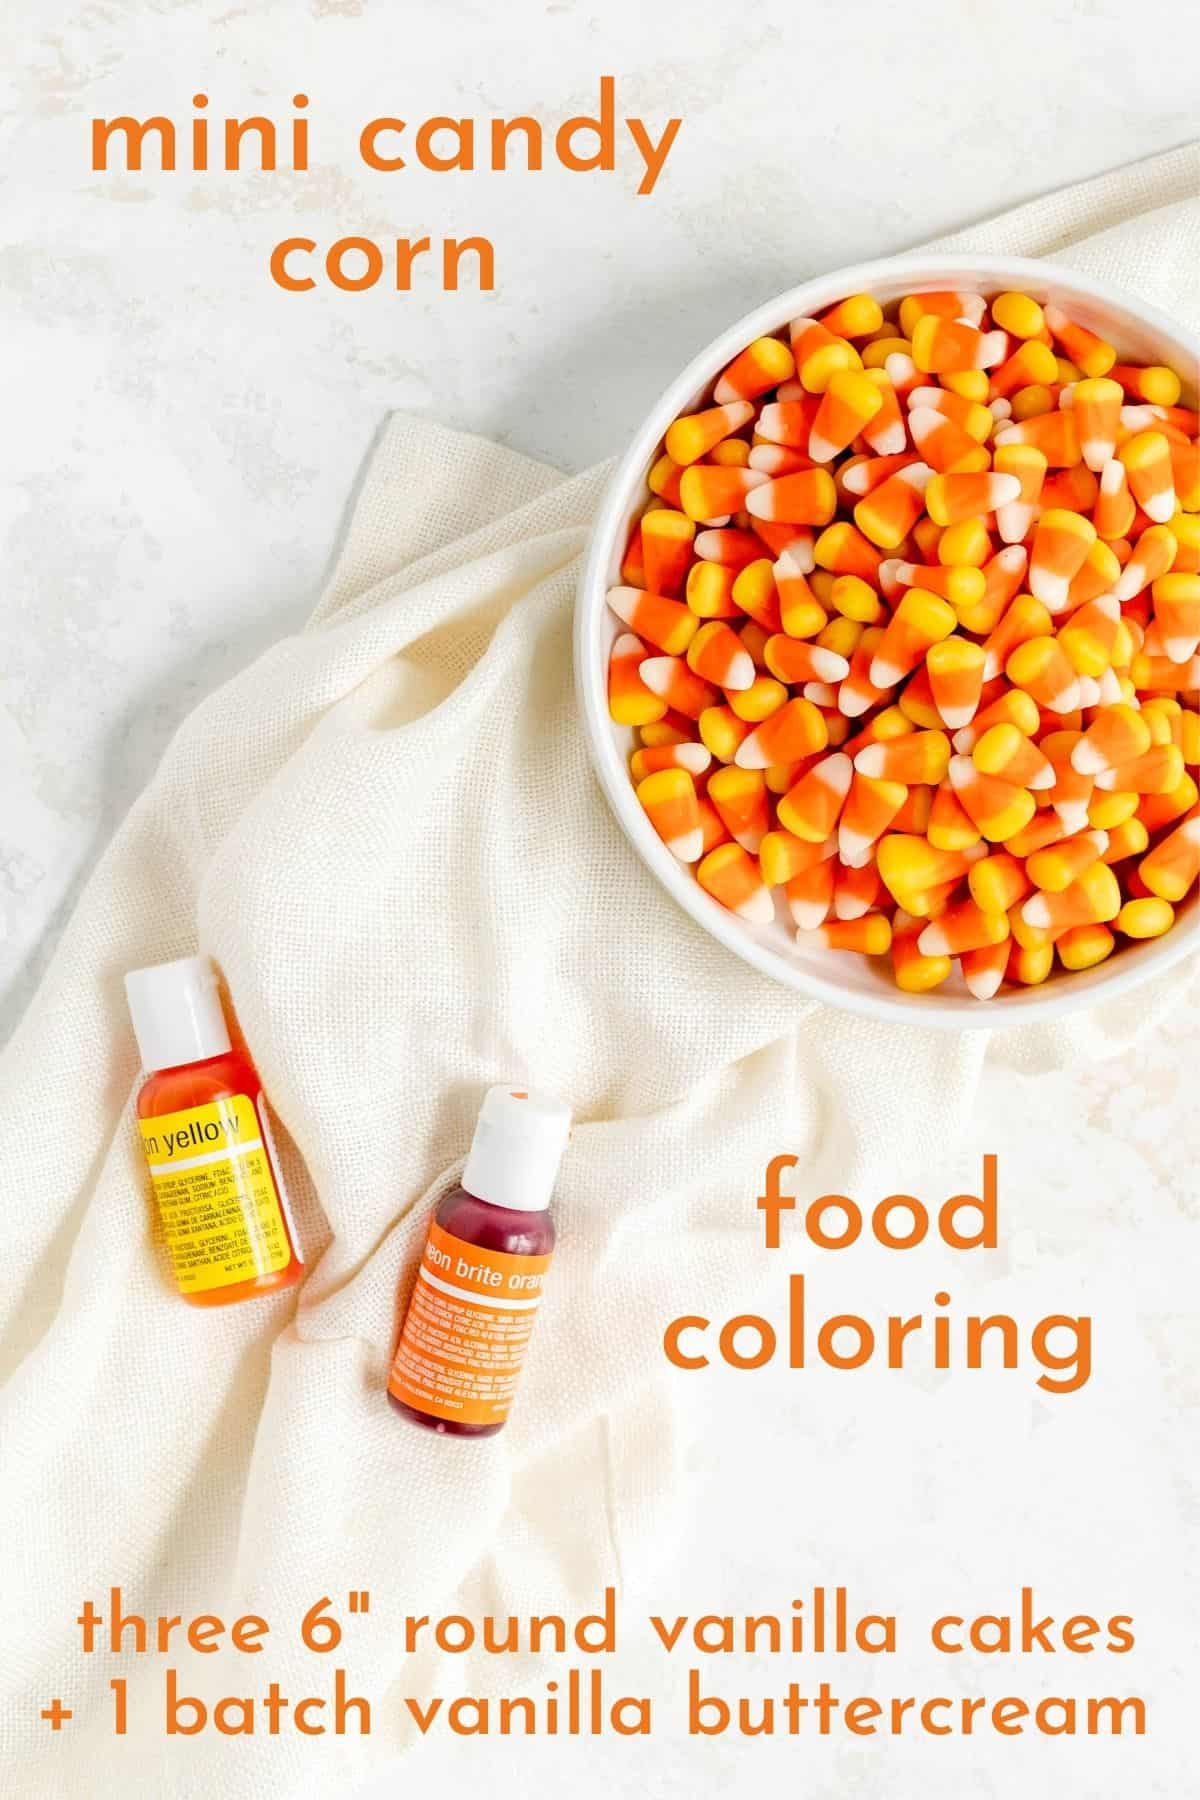 a bowl of mini candy corns and bottles of yellow and orange food coloring on white background